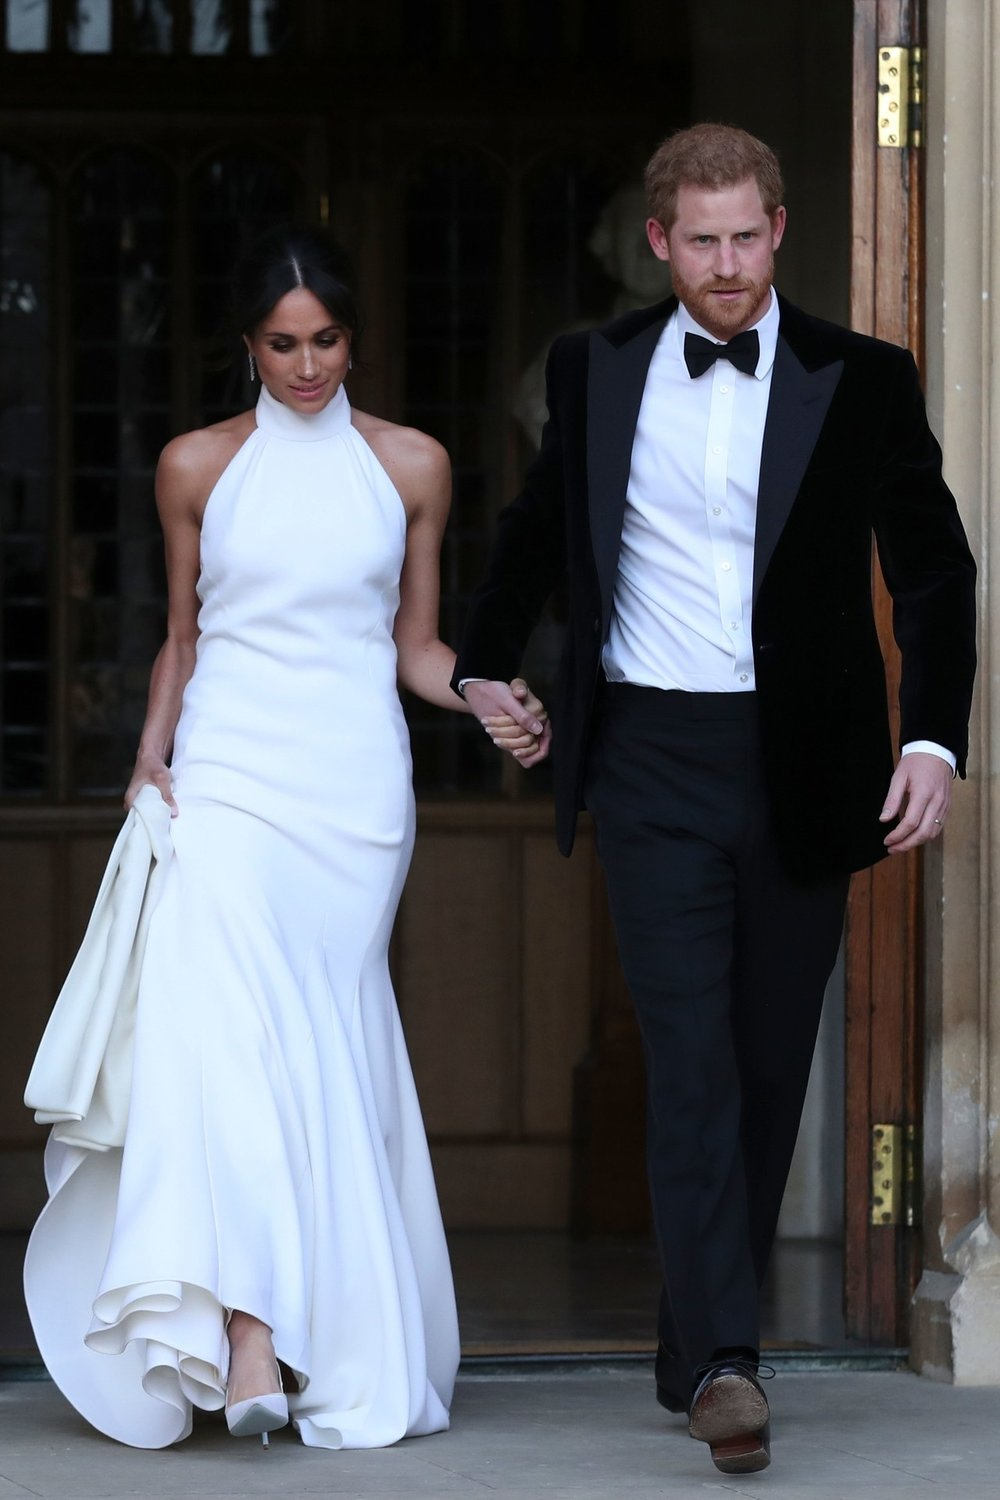 Meghan Markle reception wedding gown influential wedding 2018